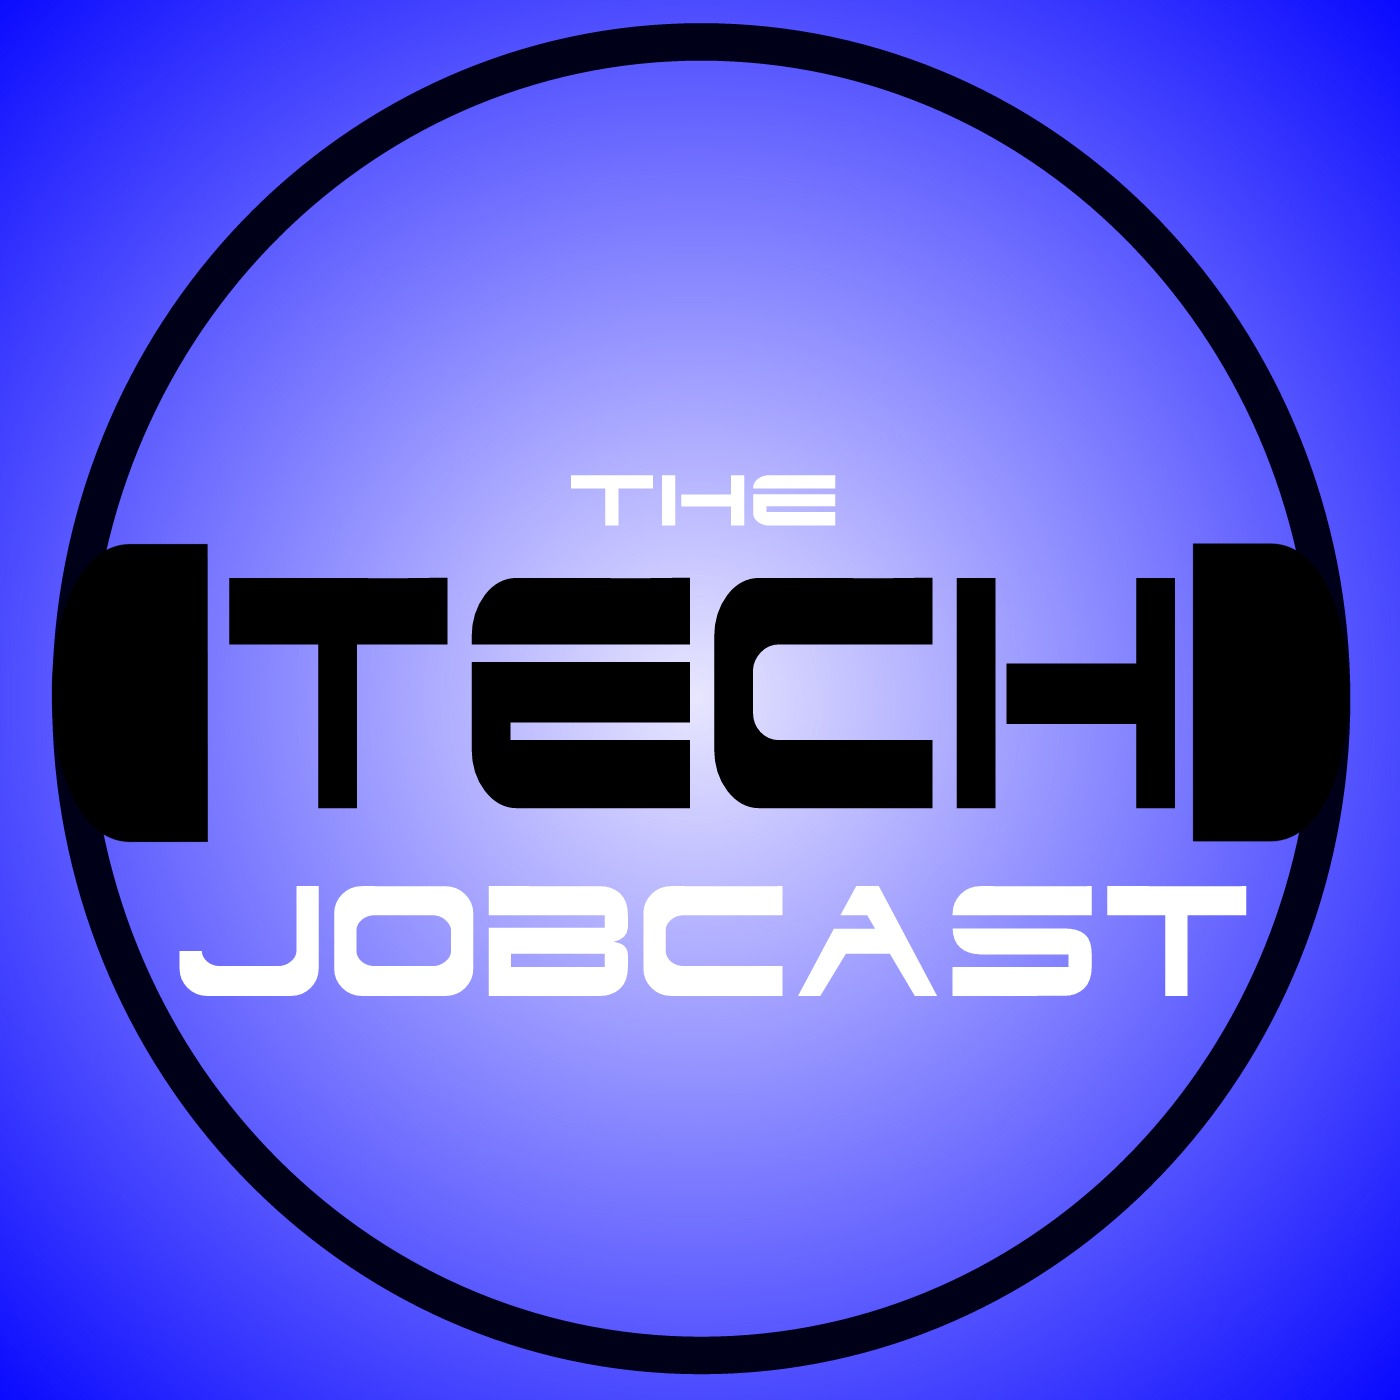 IT Job listings for the week of December 4, 2016